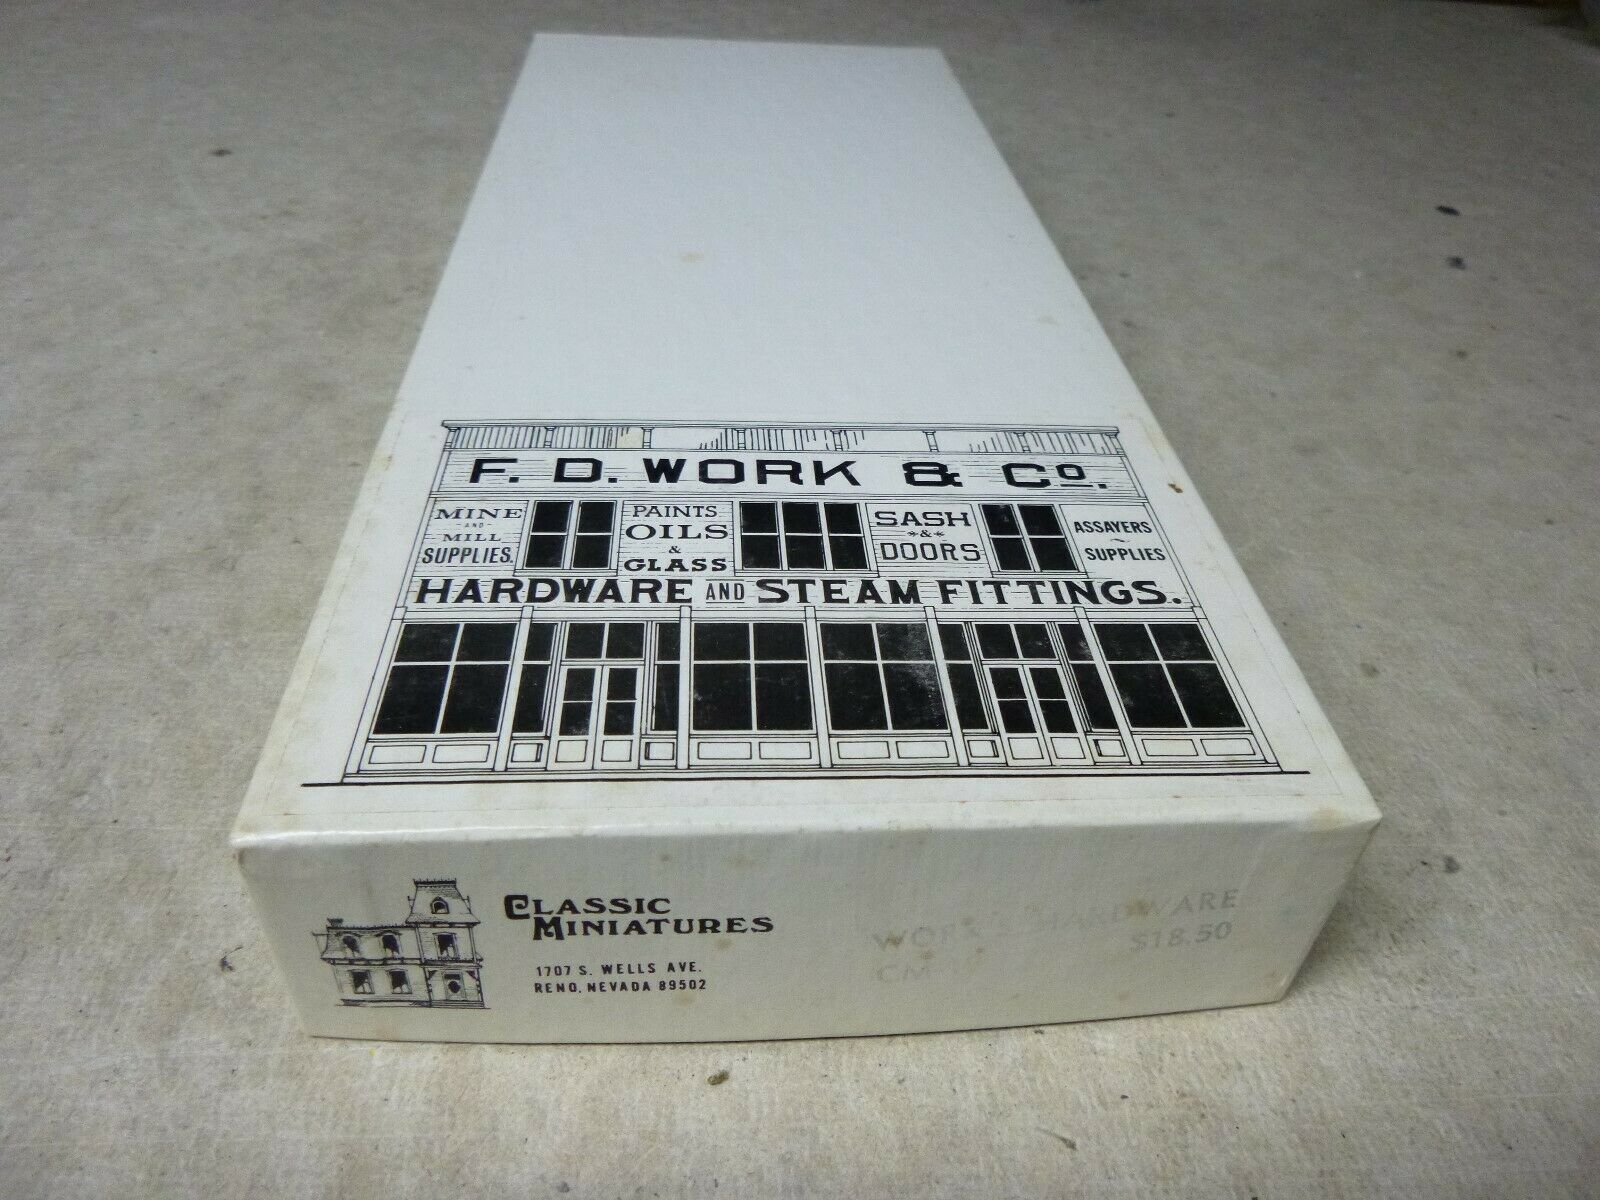 HO CRAFT BUILDING KIT -  FD WORKS & CO. - CLASSIC MINIATURES